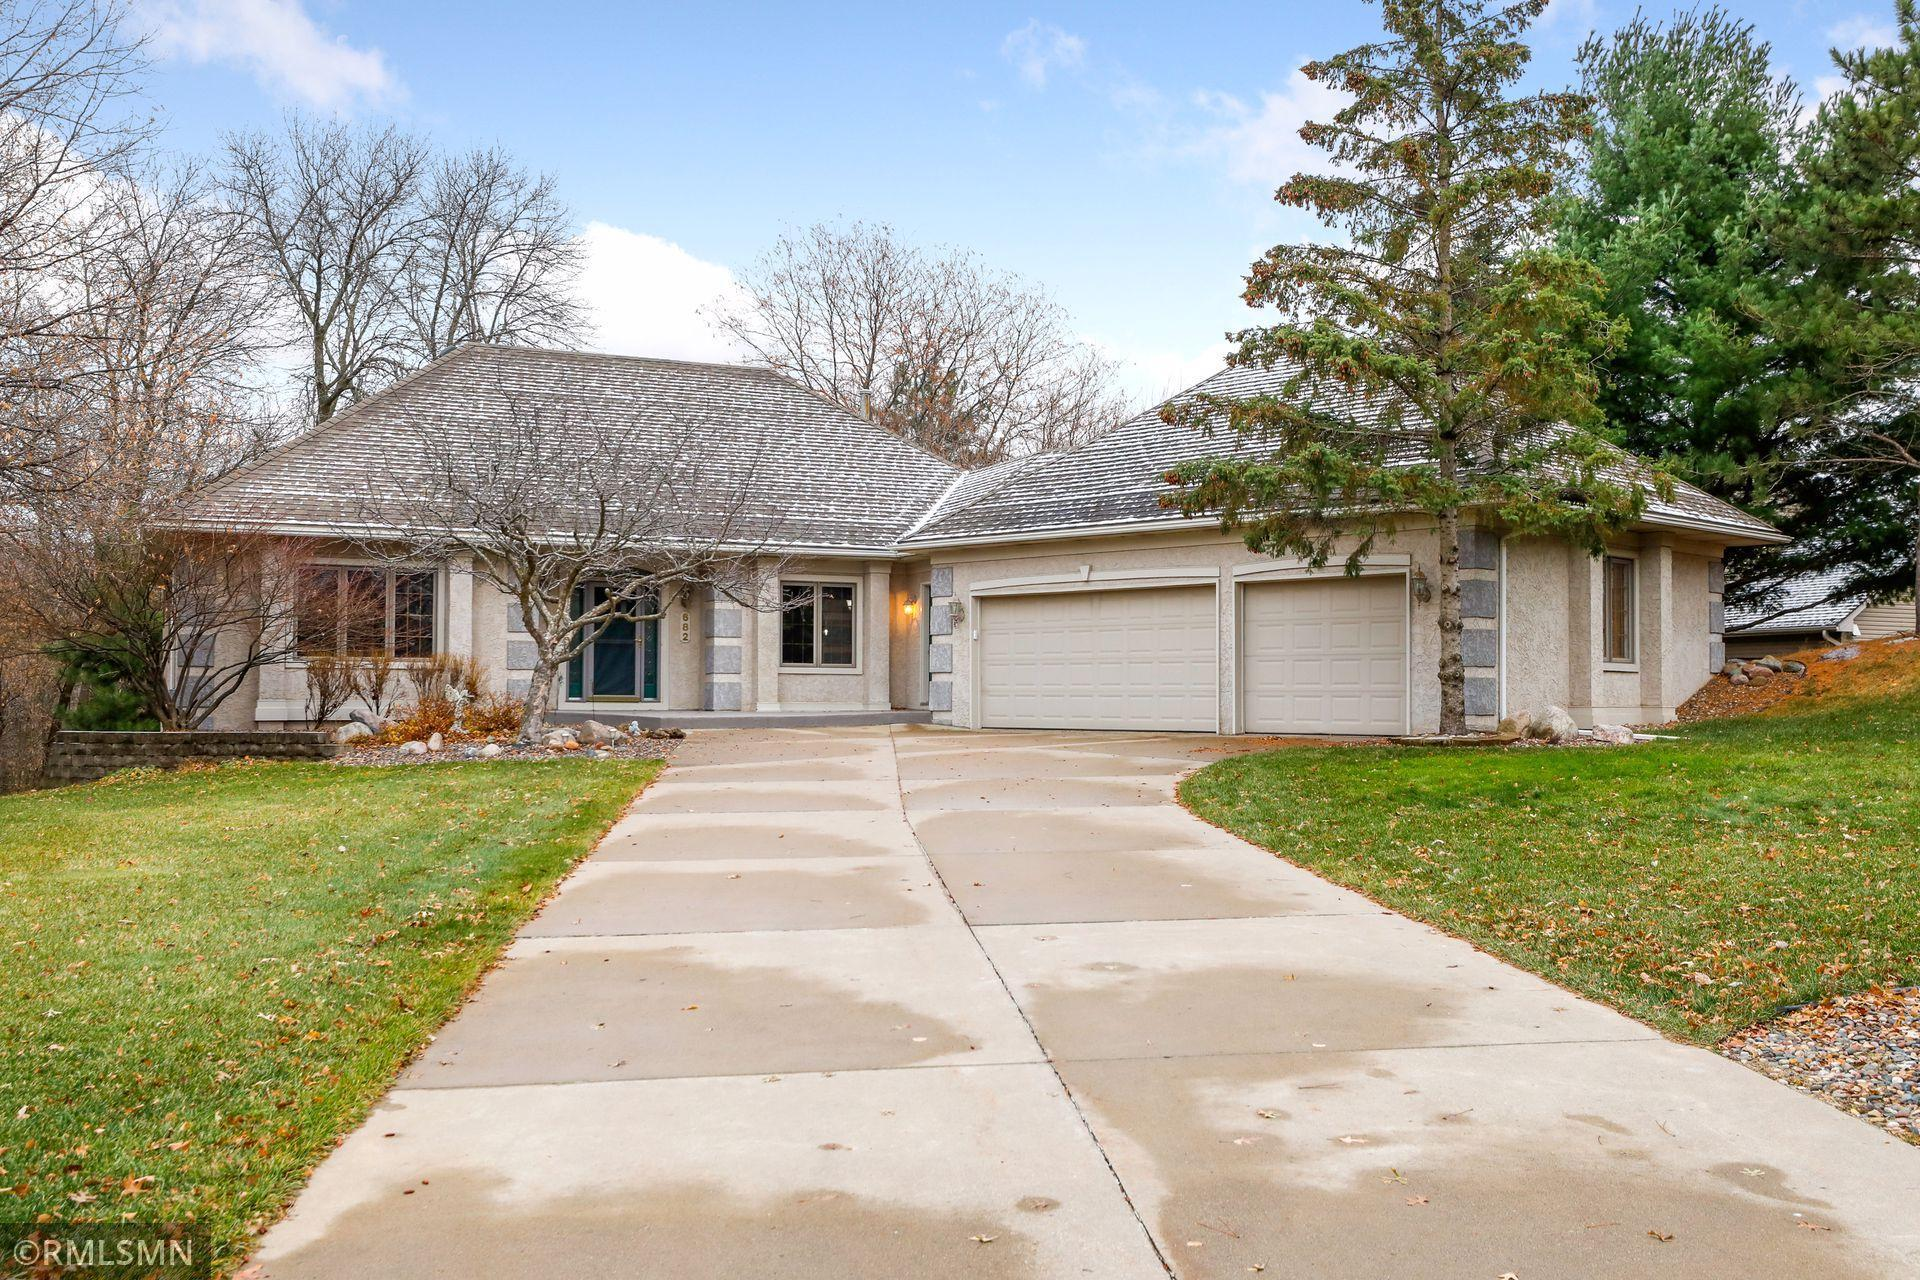 682 Huntington Court S Property Photo - Maplewood, MN real estate listing